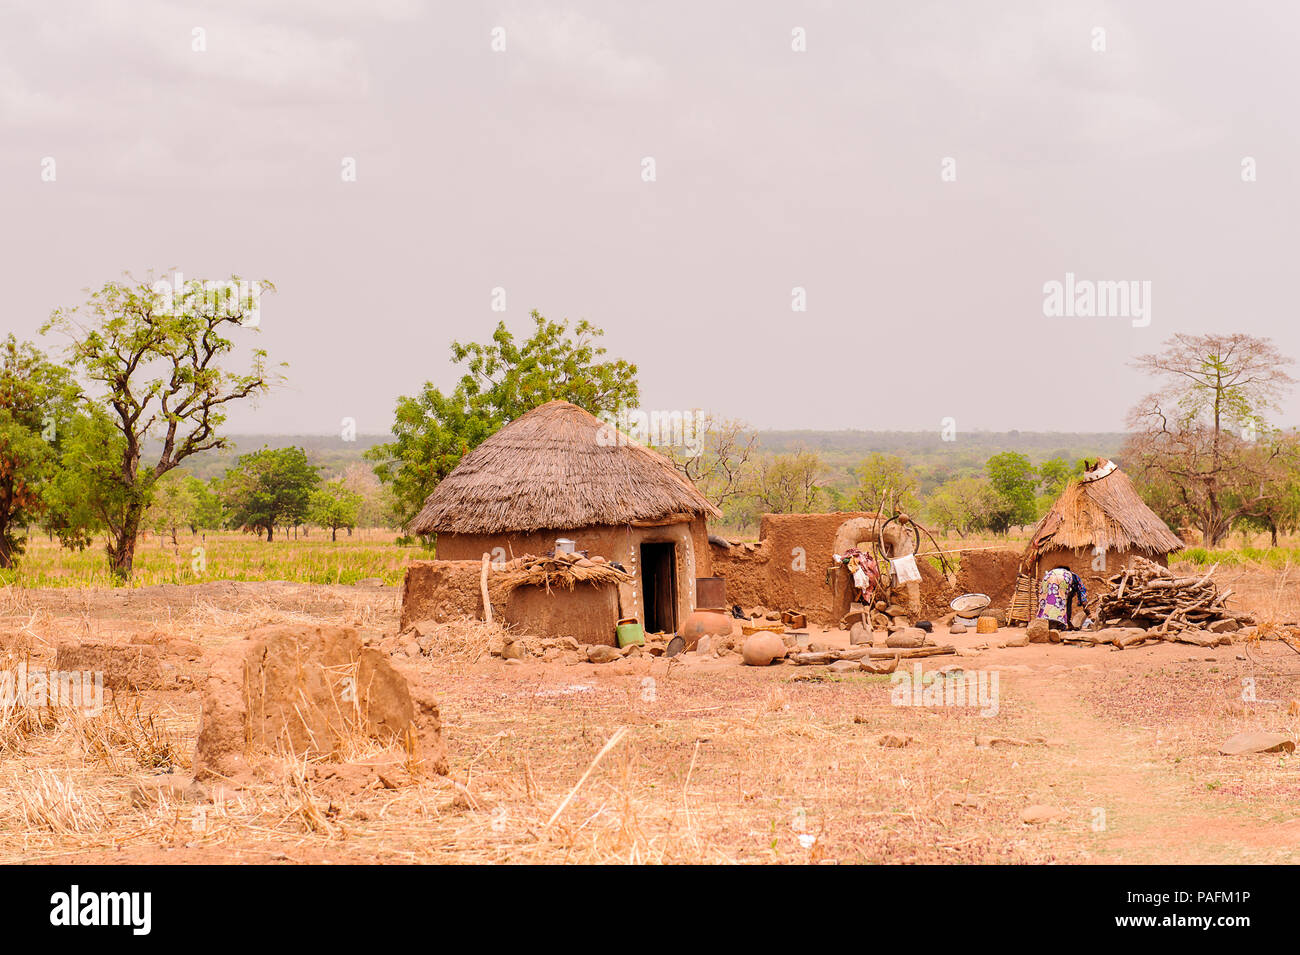 ACCRA, GHANA - MARCH 6, 2012: Ghanaian village. People of Ghana suffer of poverty due to the unstable economic situation - Stock Image